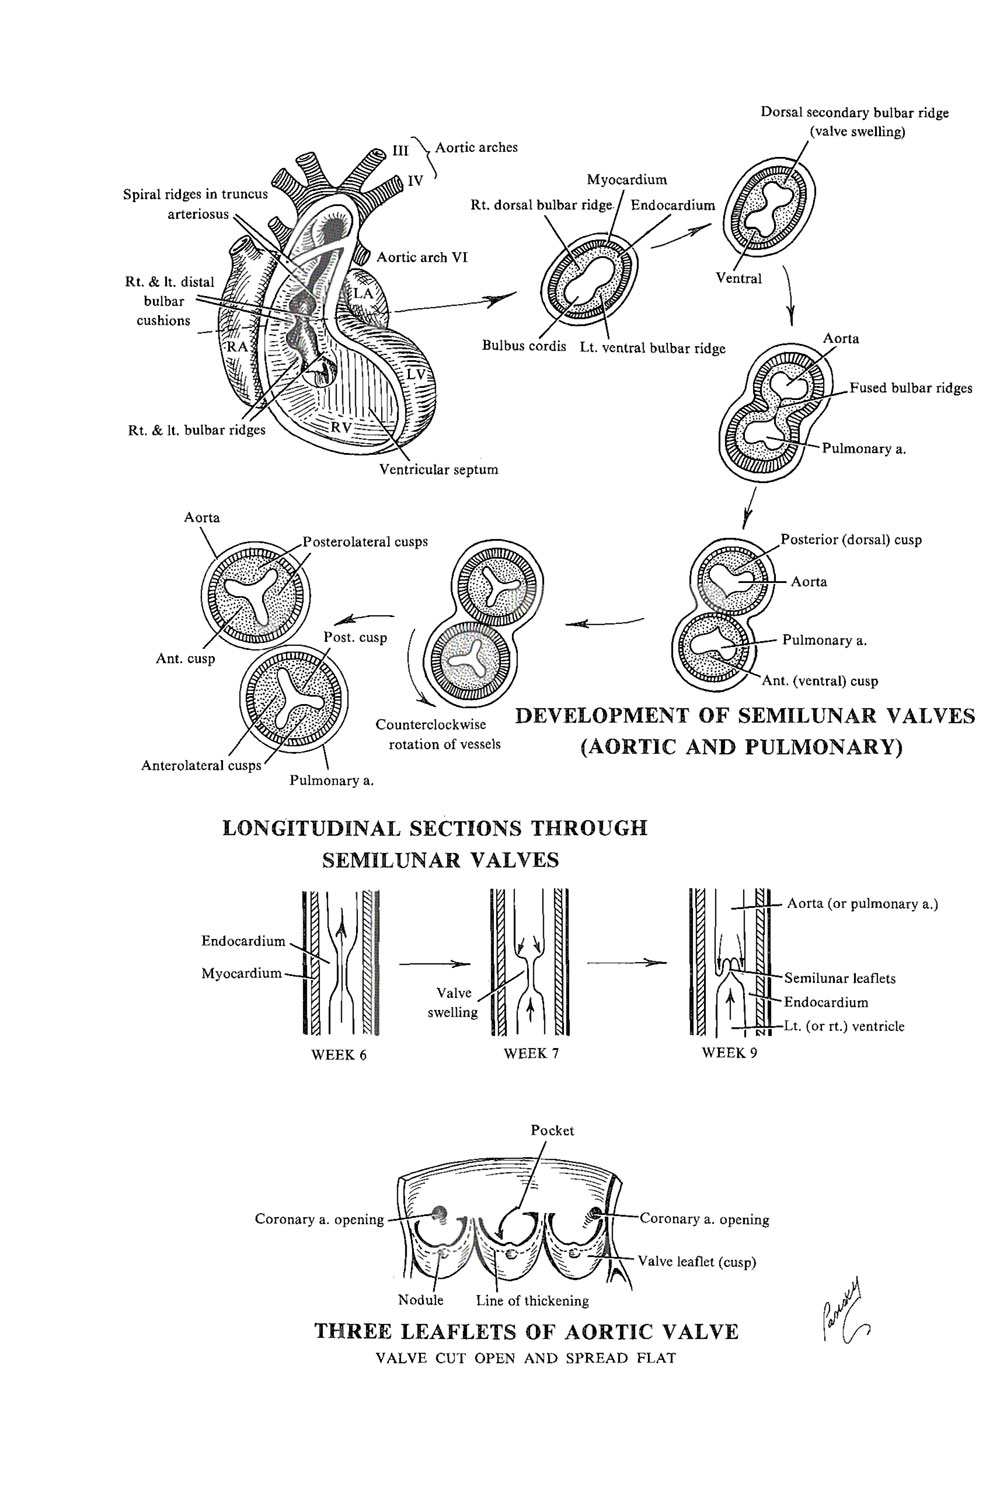 the cardiac valves and  conducting system: image #1